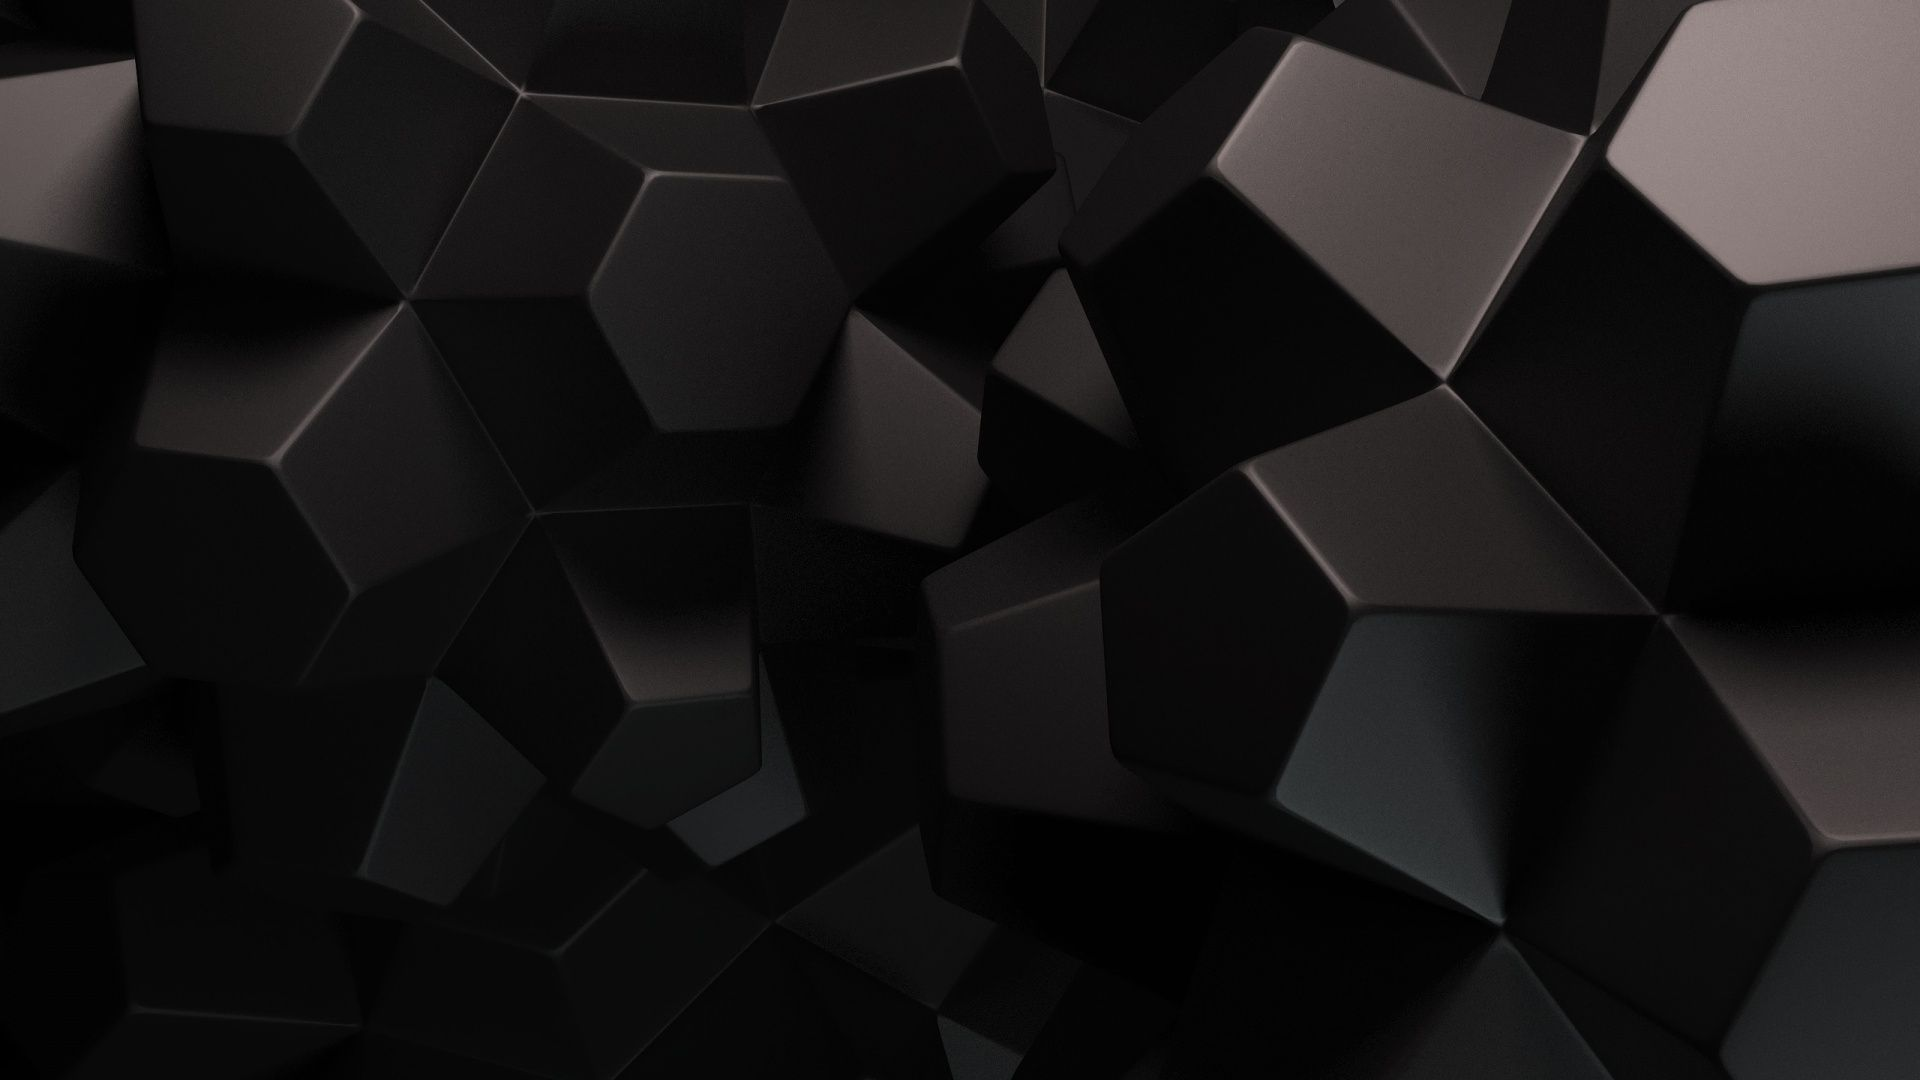 Black Theme Hd Wallpaper 1920x1080 In 2020 With Images Hd